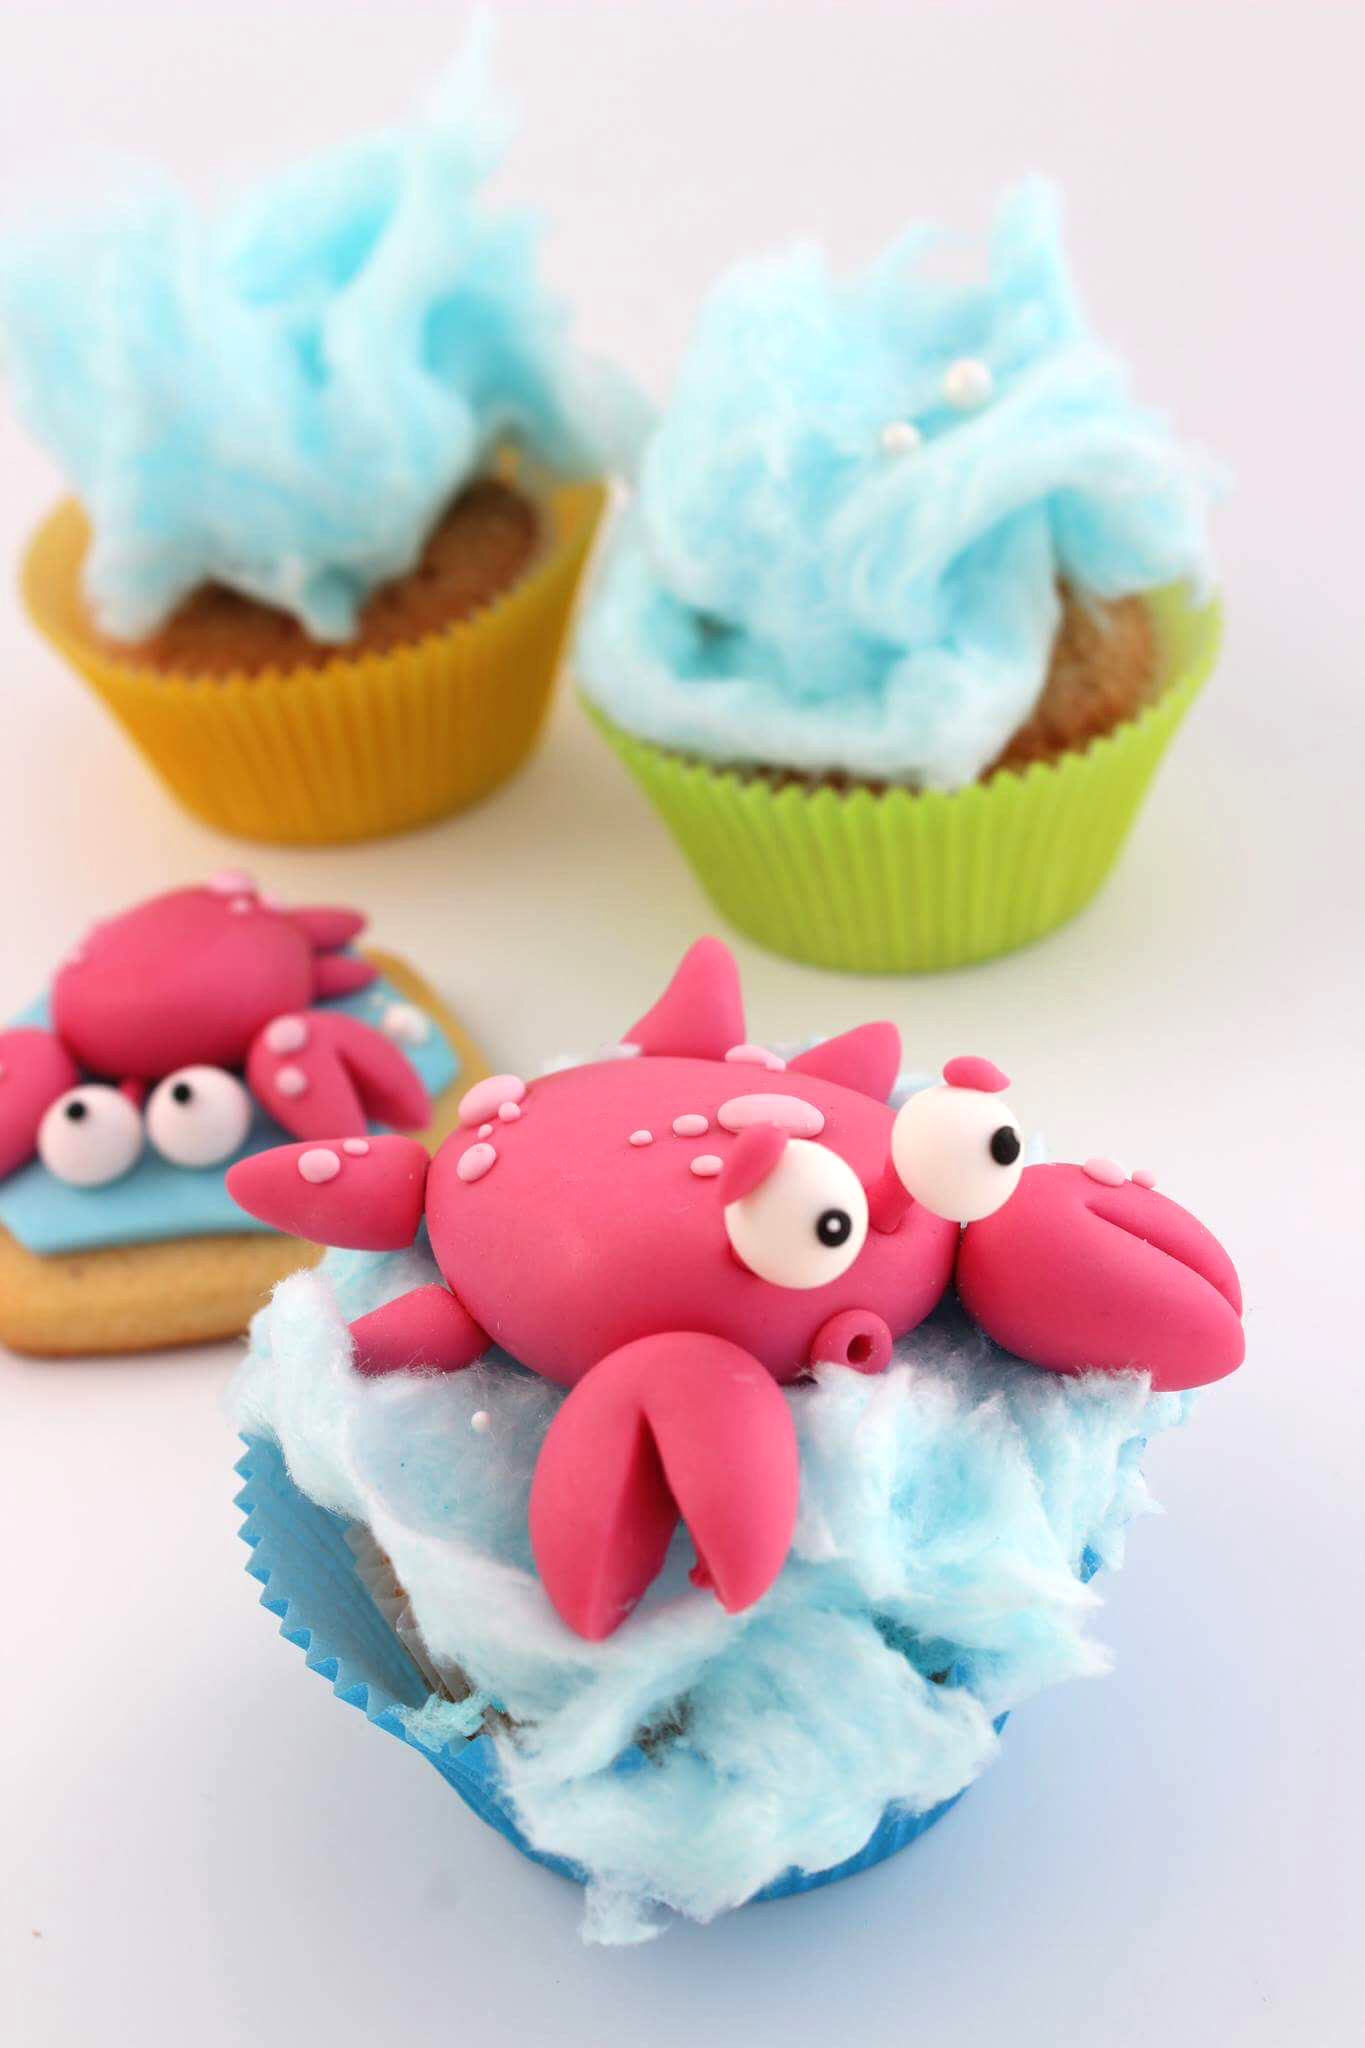 sff17_CrabTutorial-Monique-Ascanelli-The-Cake-Topper-BothHero3.JPG#asset:17060